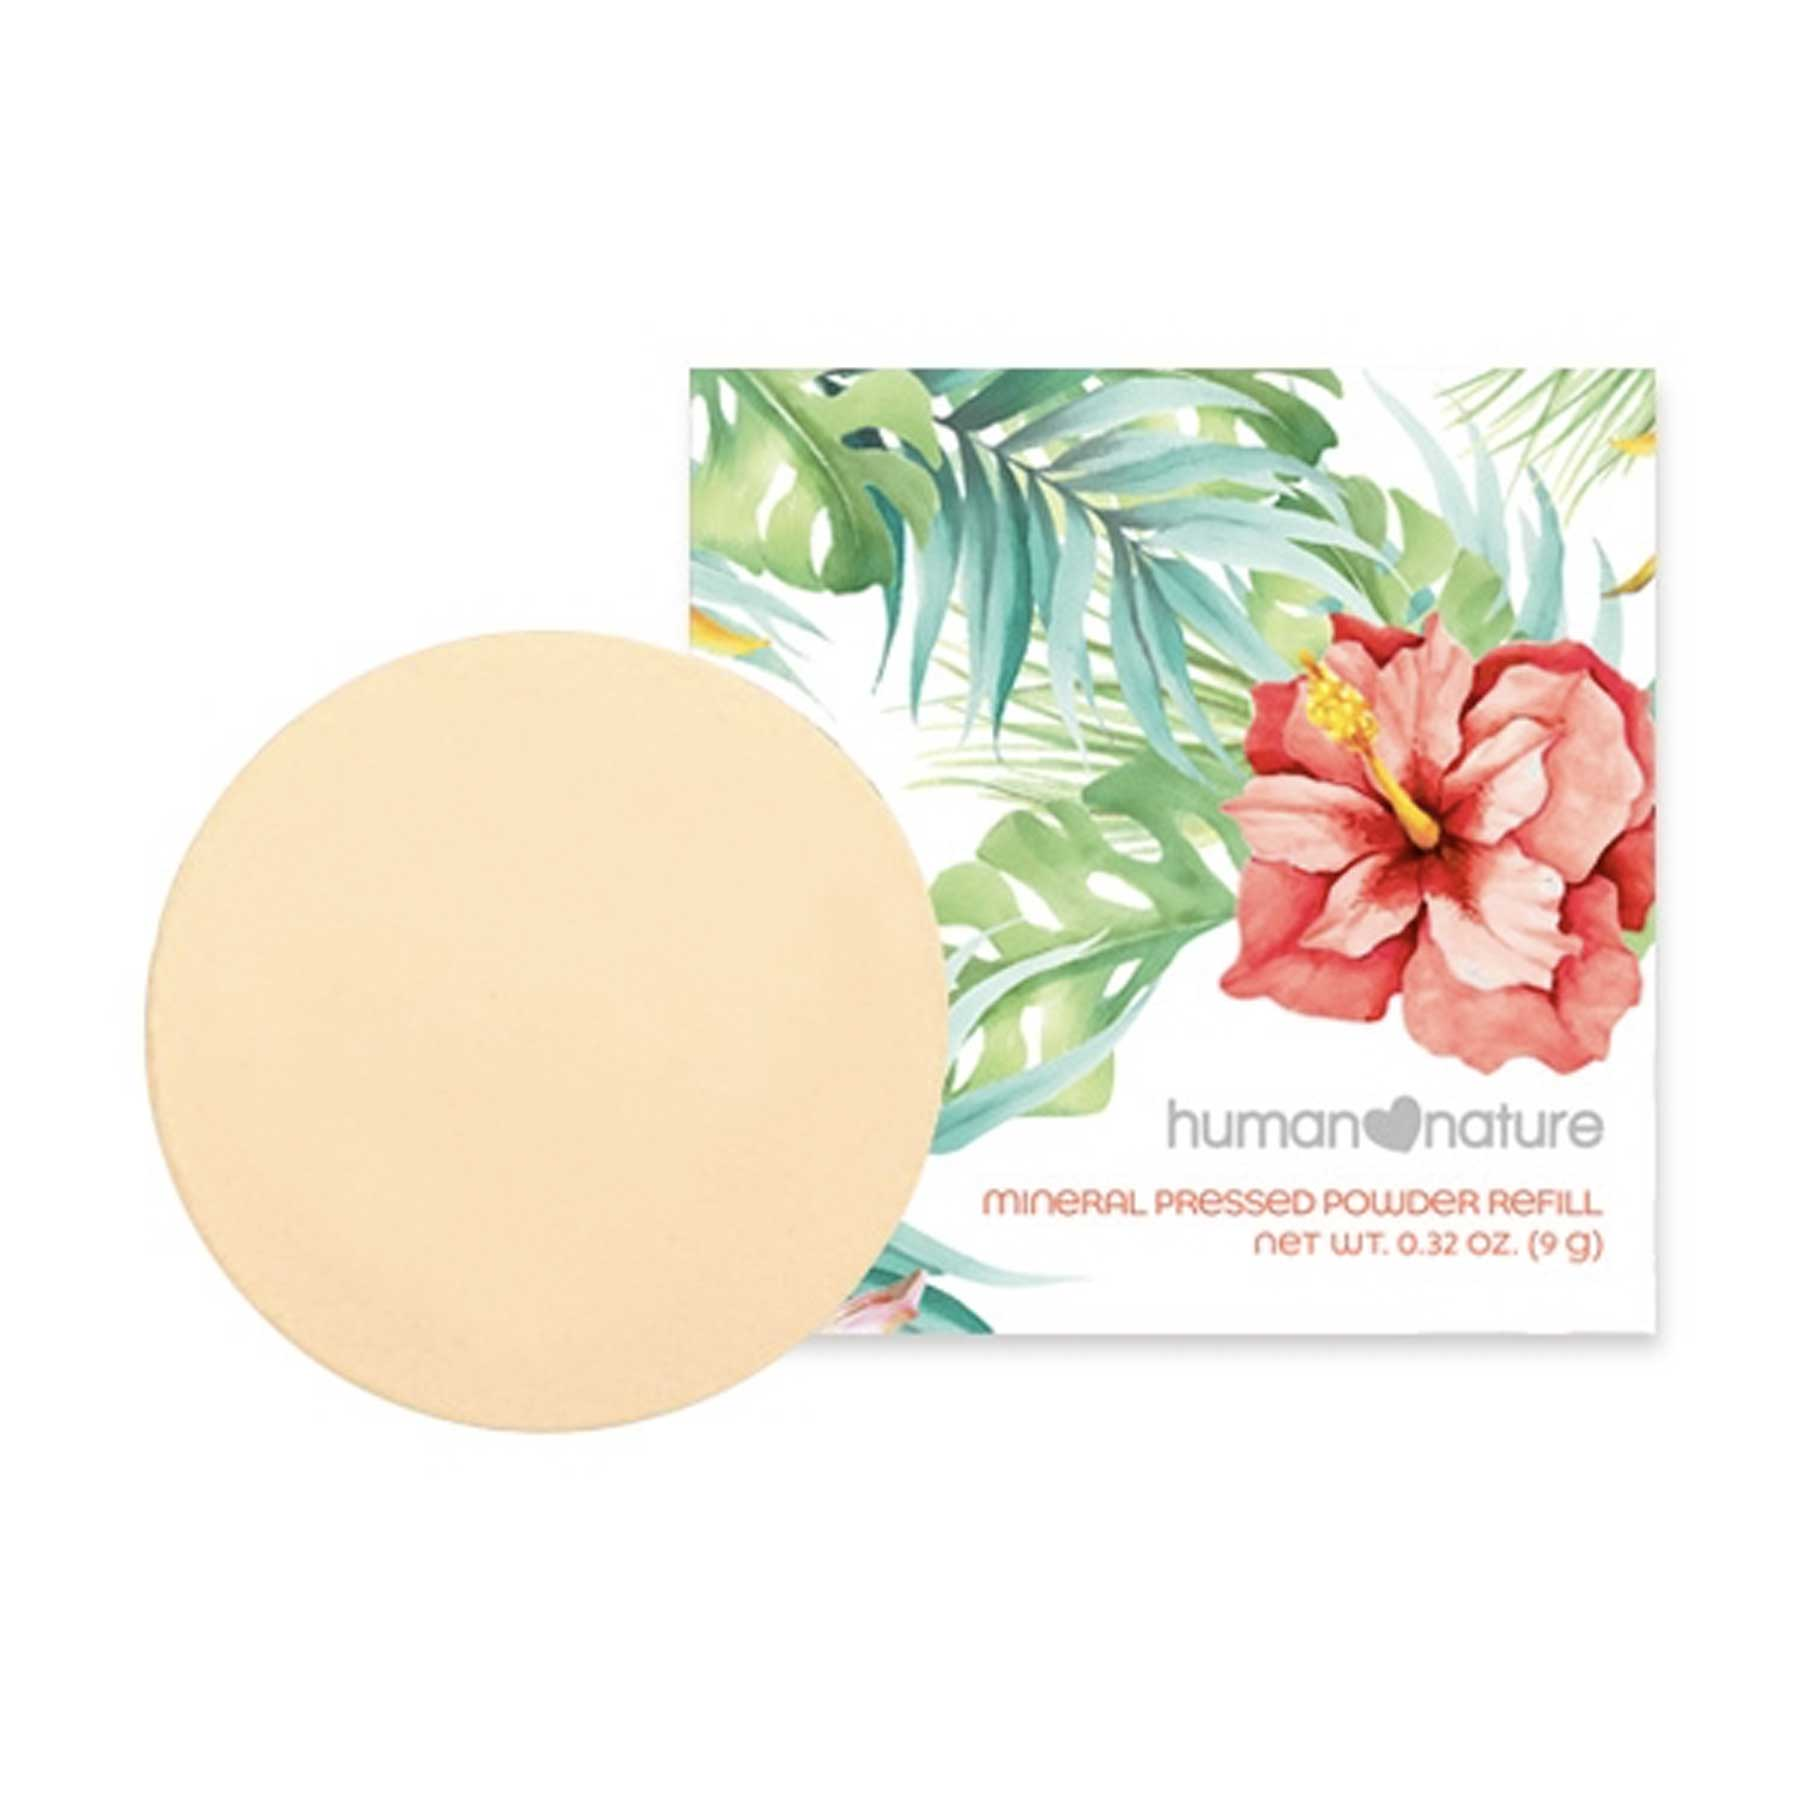 Mineral Pressed Powder Refill 9g - Top-Season Essentials